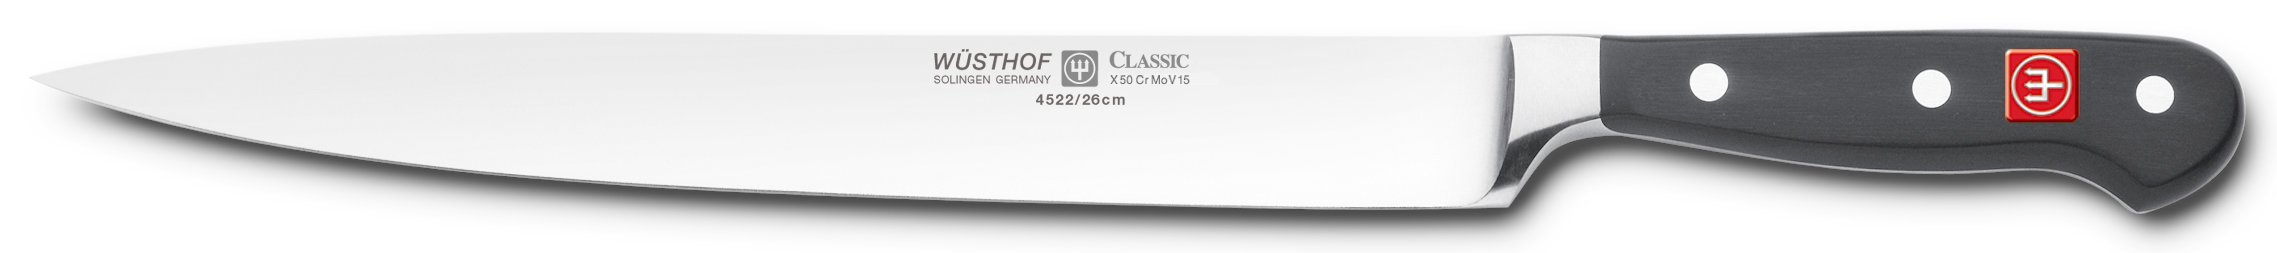 Wusthof 4522-7/26 CLASSIC Carving Knife One Size Black, Stainless Steel